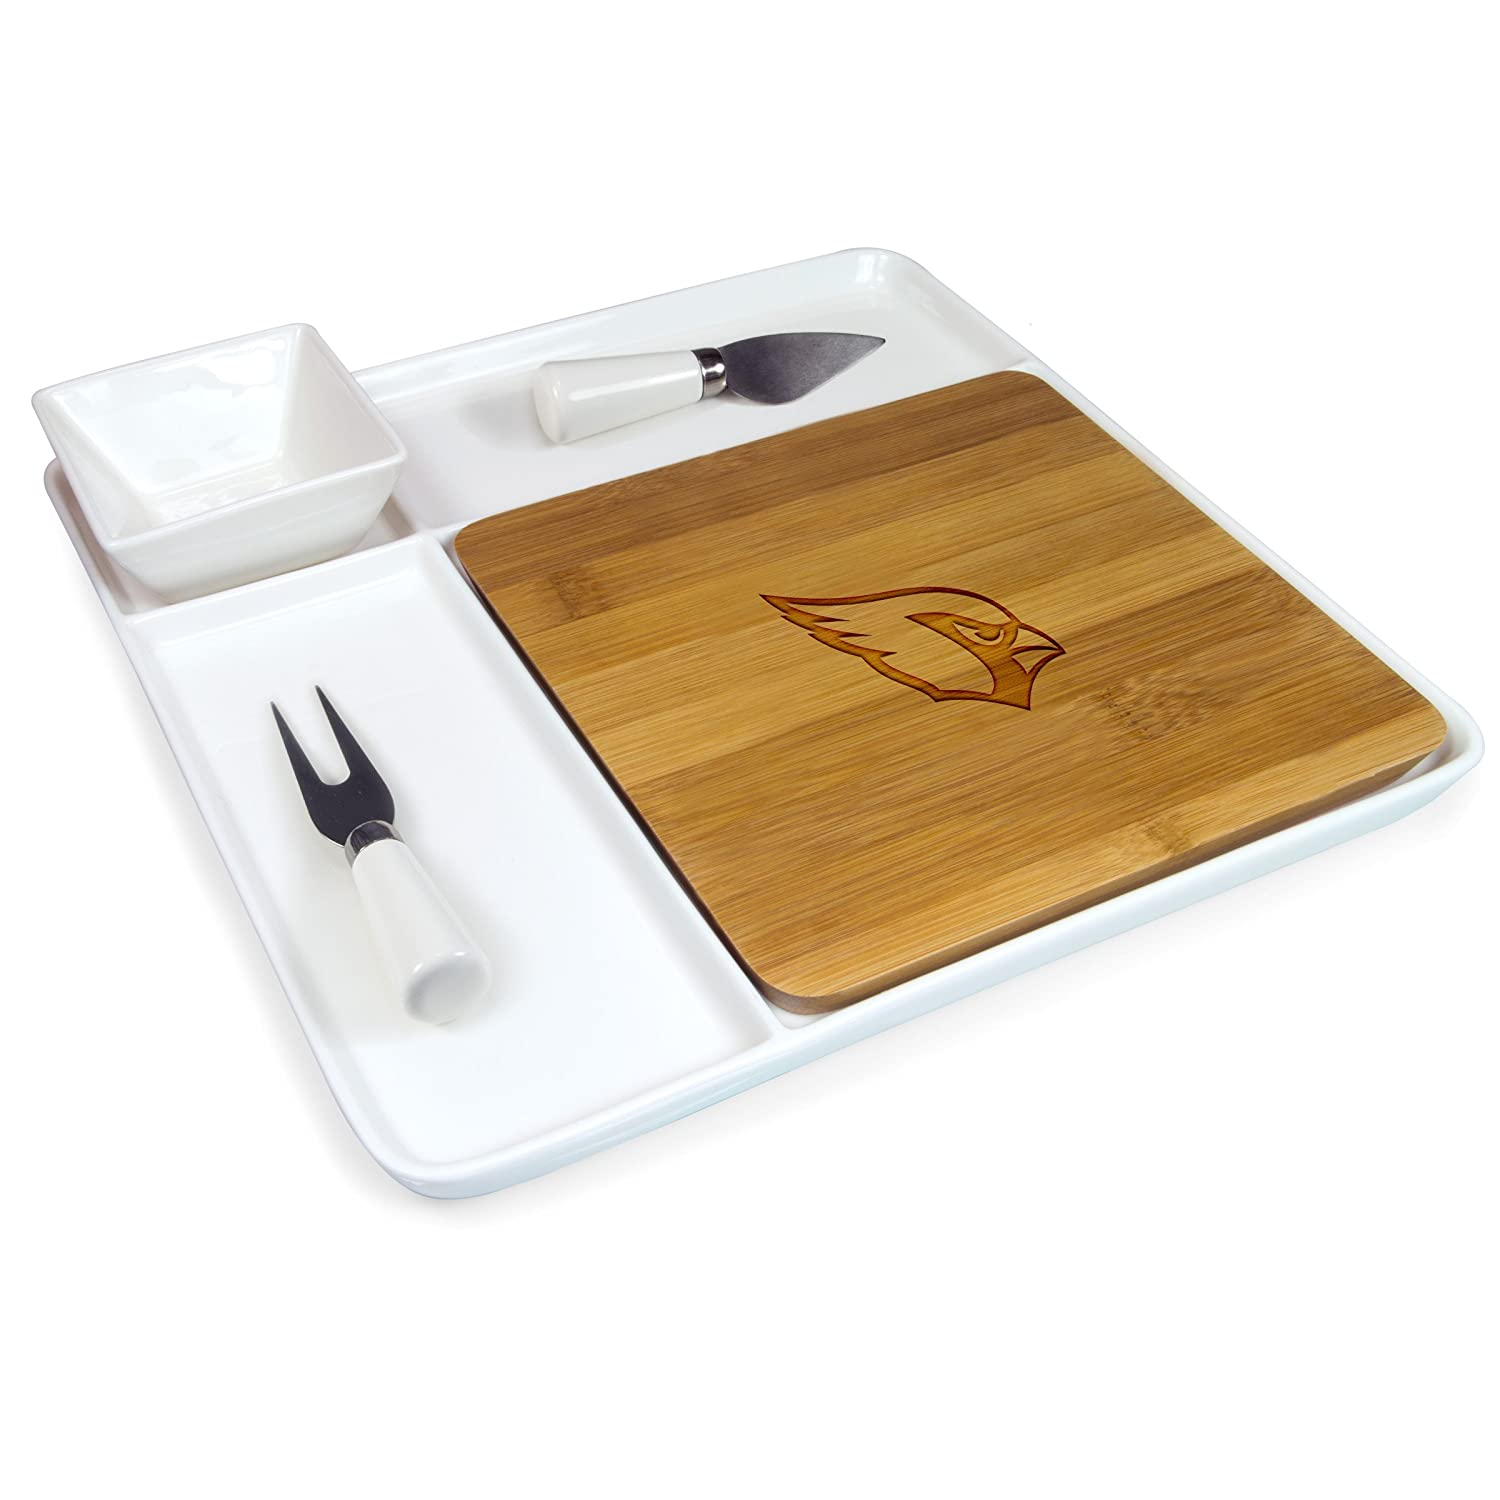 NFL Arizona Cardinals Homegating Peninsula Serving Tray with Cutting Board and Cheese Tools Picnic Time 953-05-505-013-2